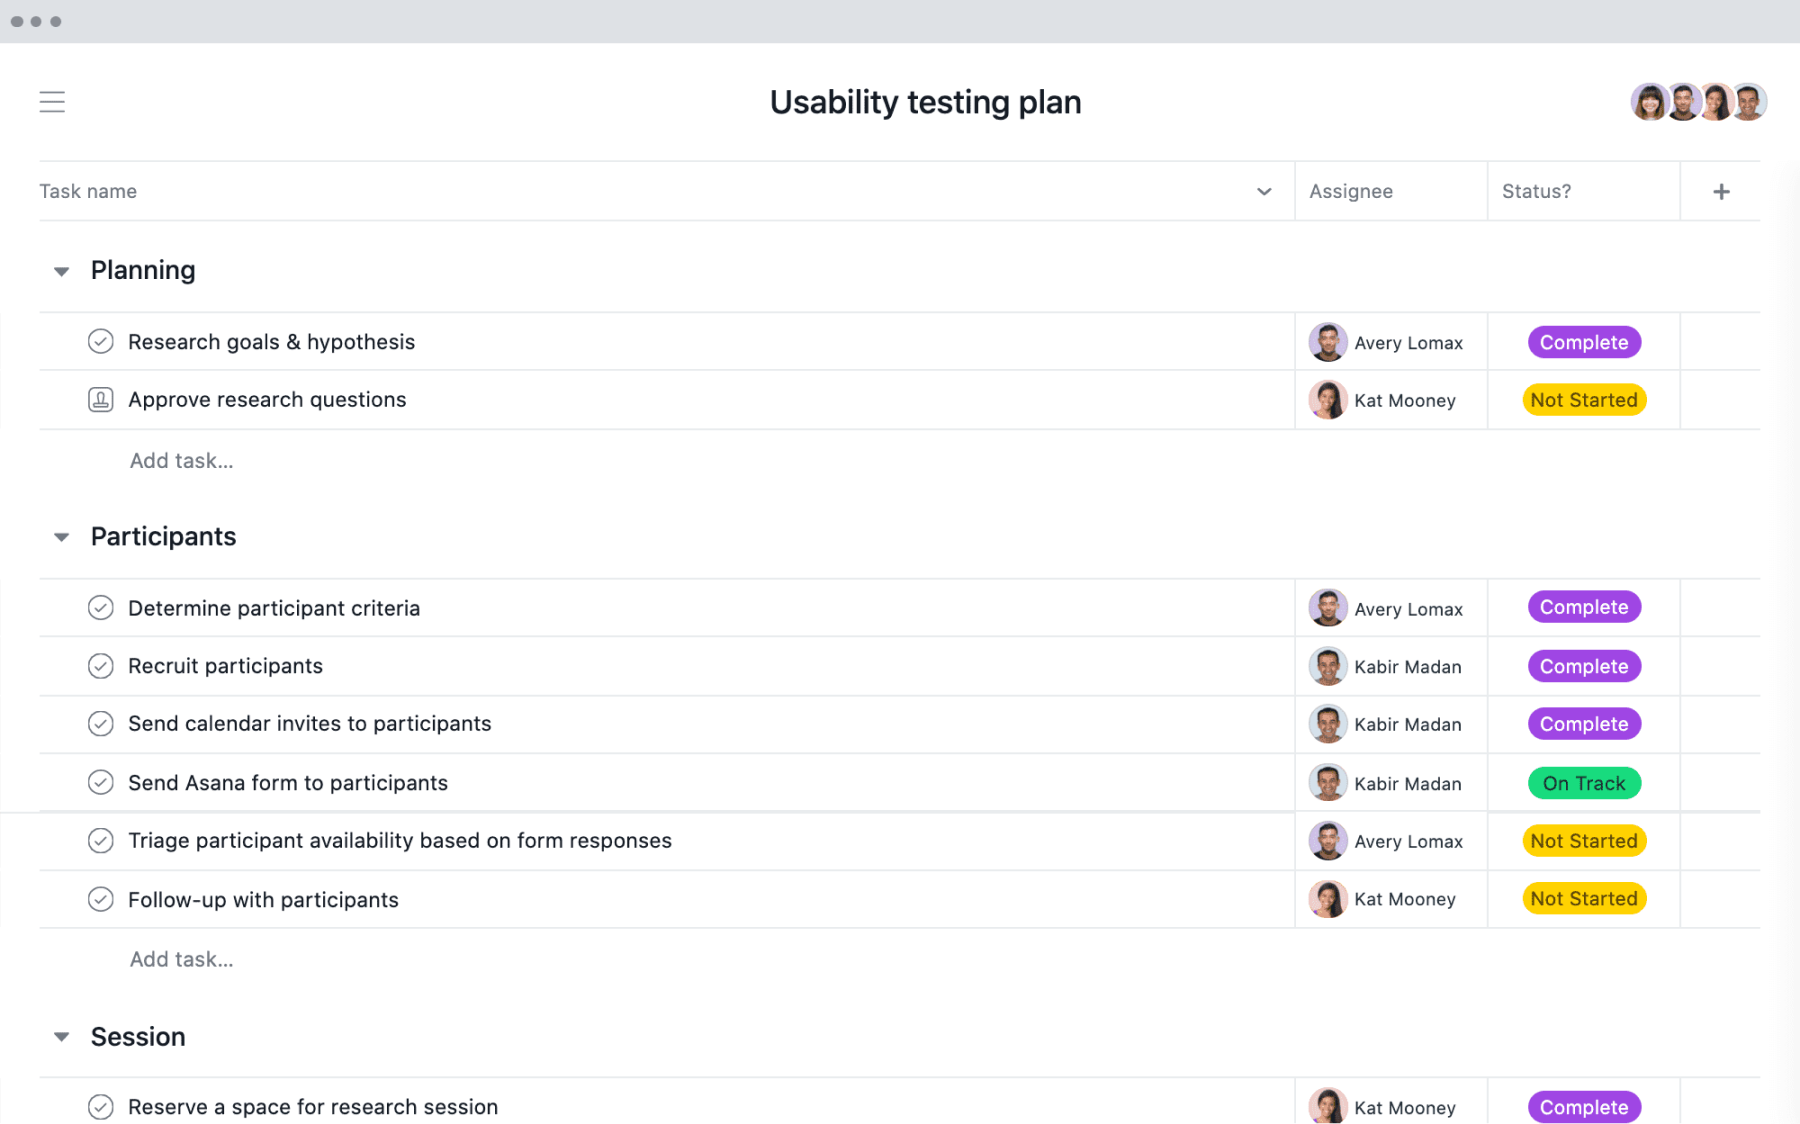 [List view] Usability testing project in Asana, spreadsheet-style view with project deliverables